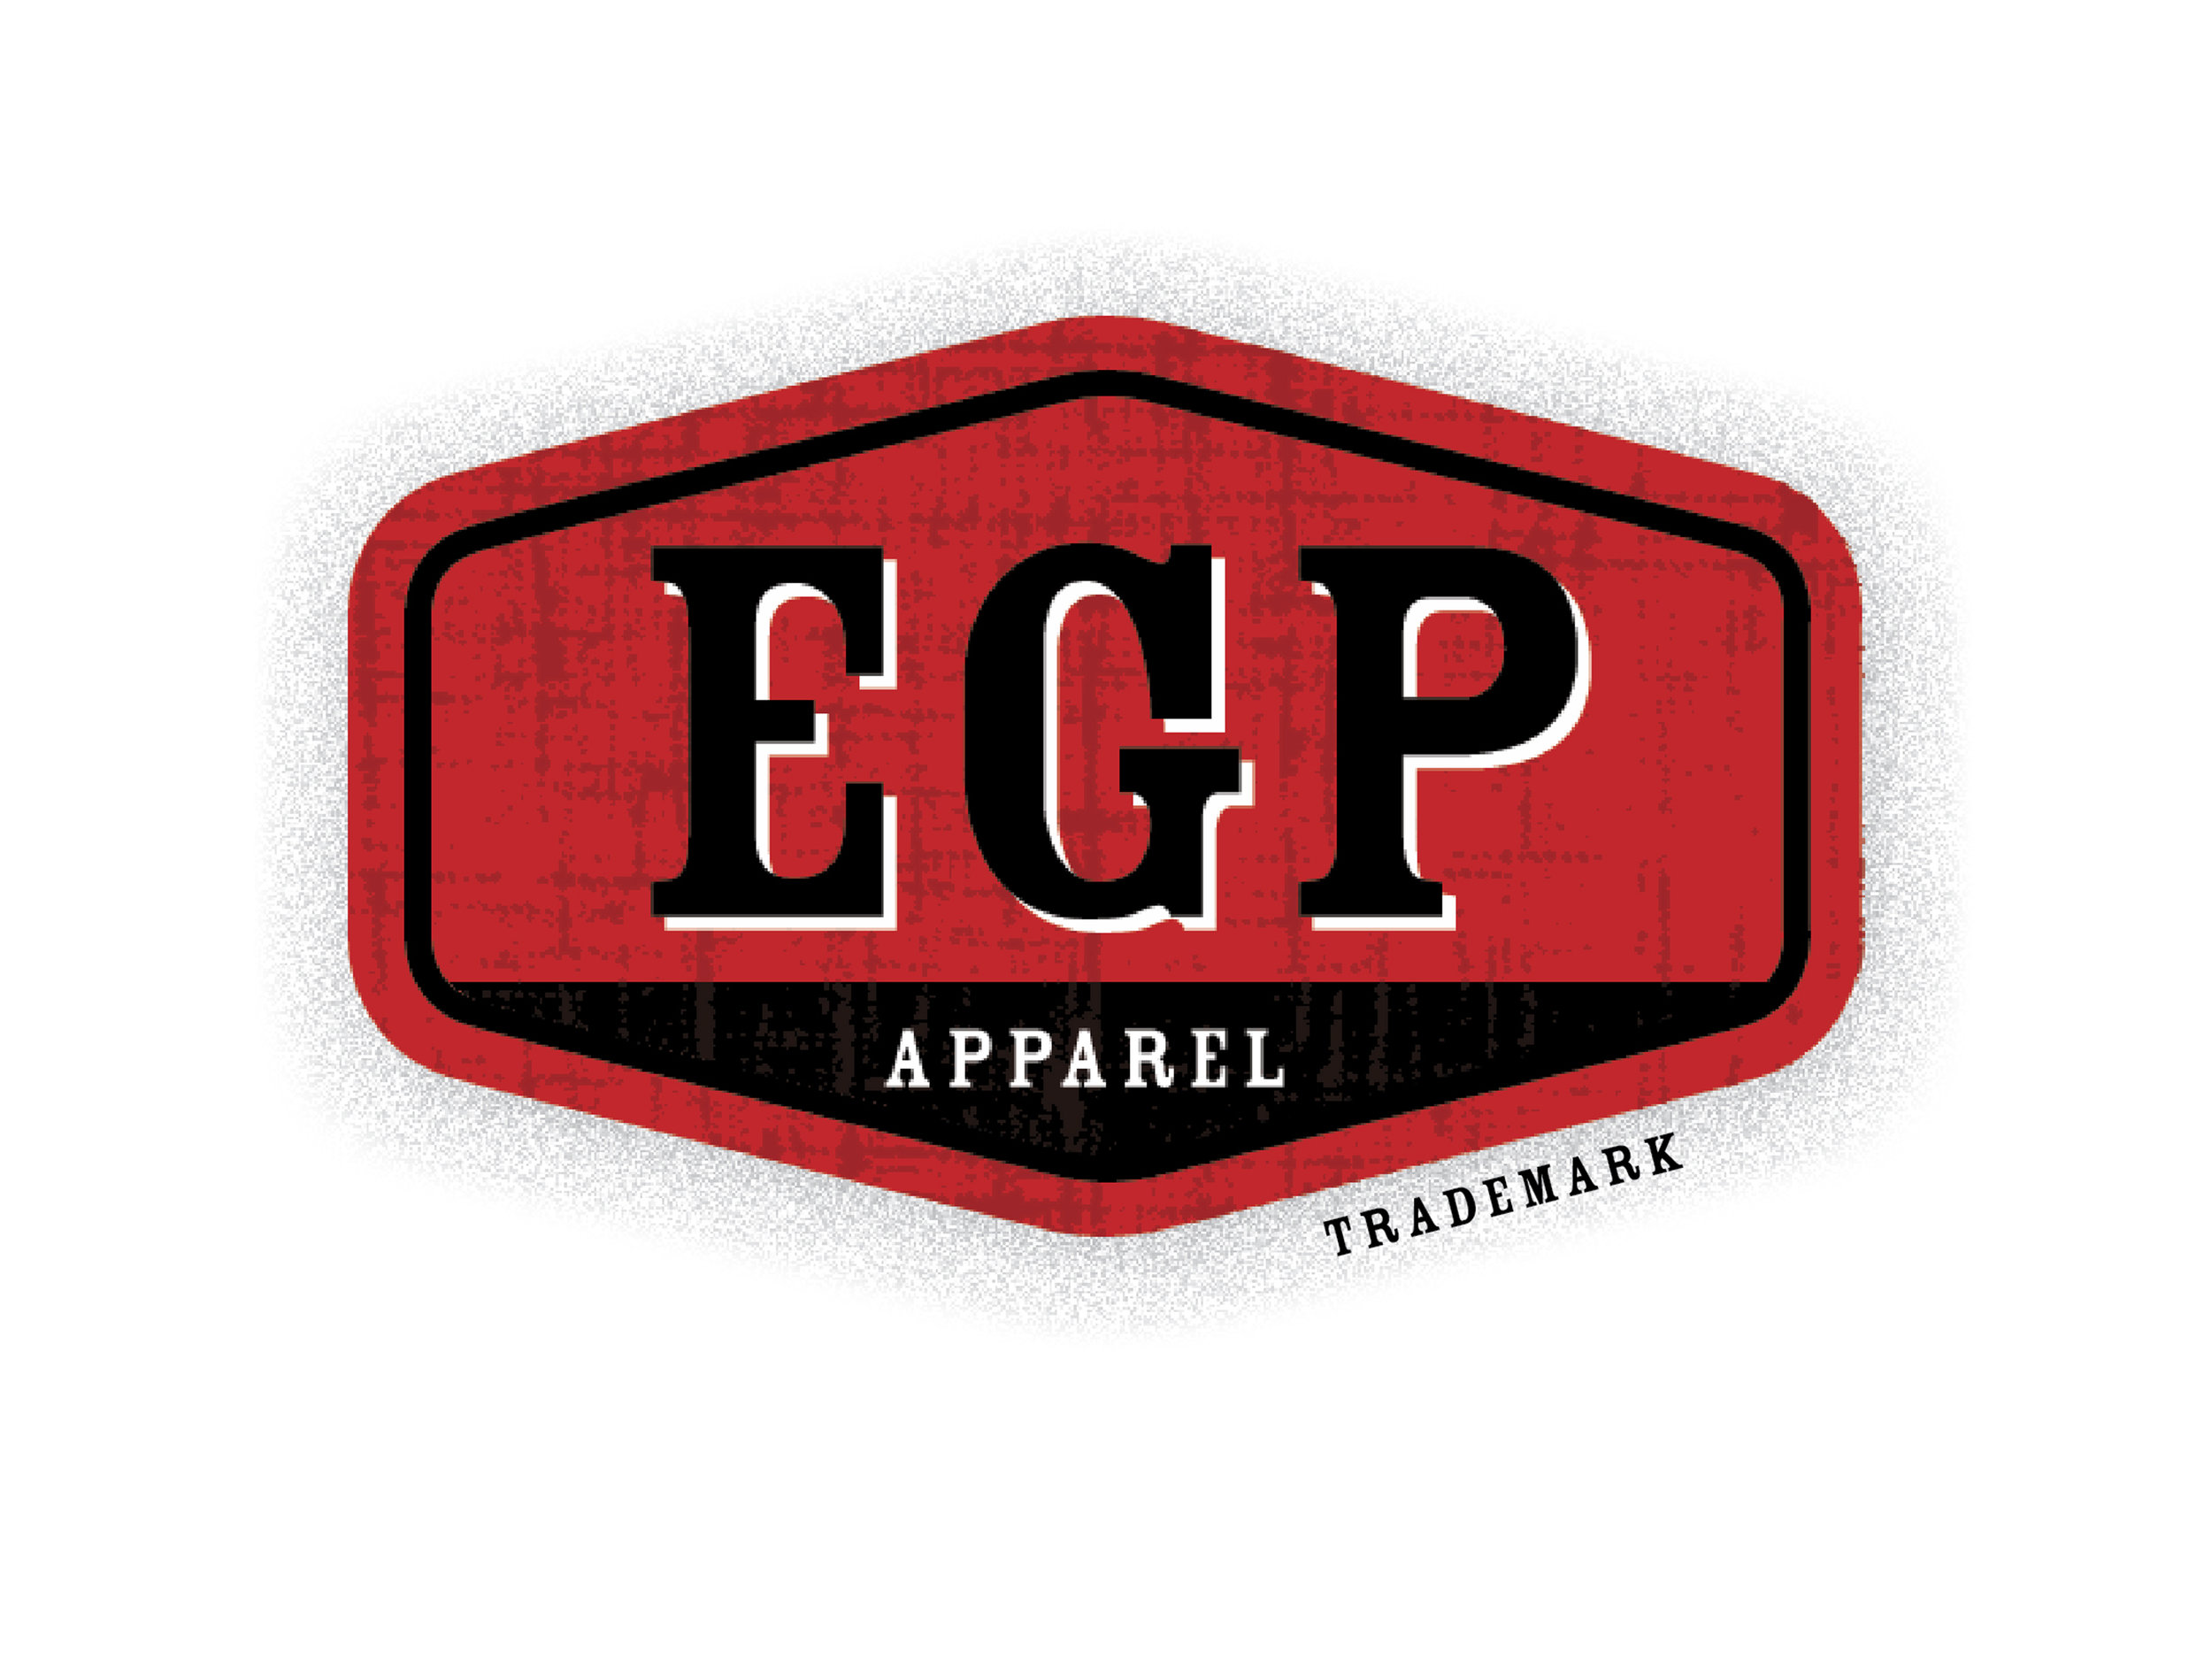 CLICK HERE TO SEE OTHER ASSETS THAT WHOVILLE HAS CREATED FOR EGP APPAREL